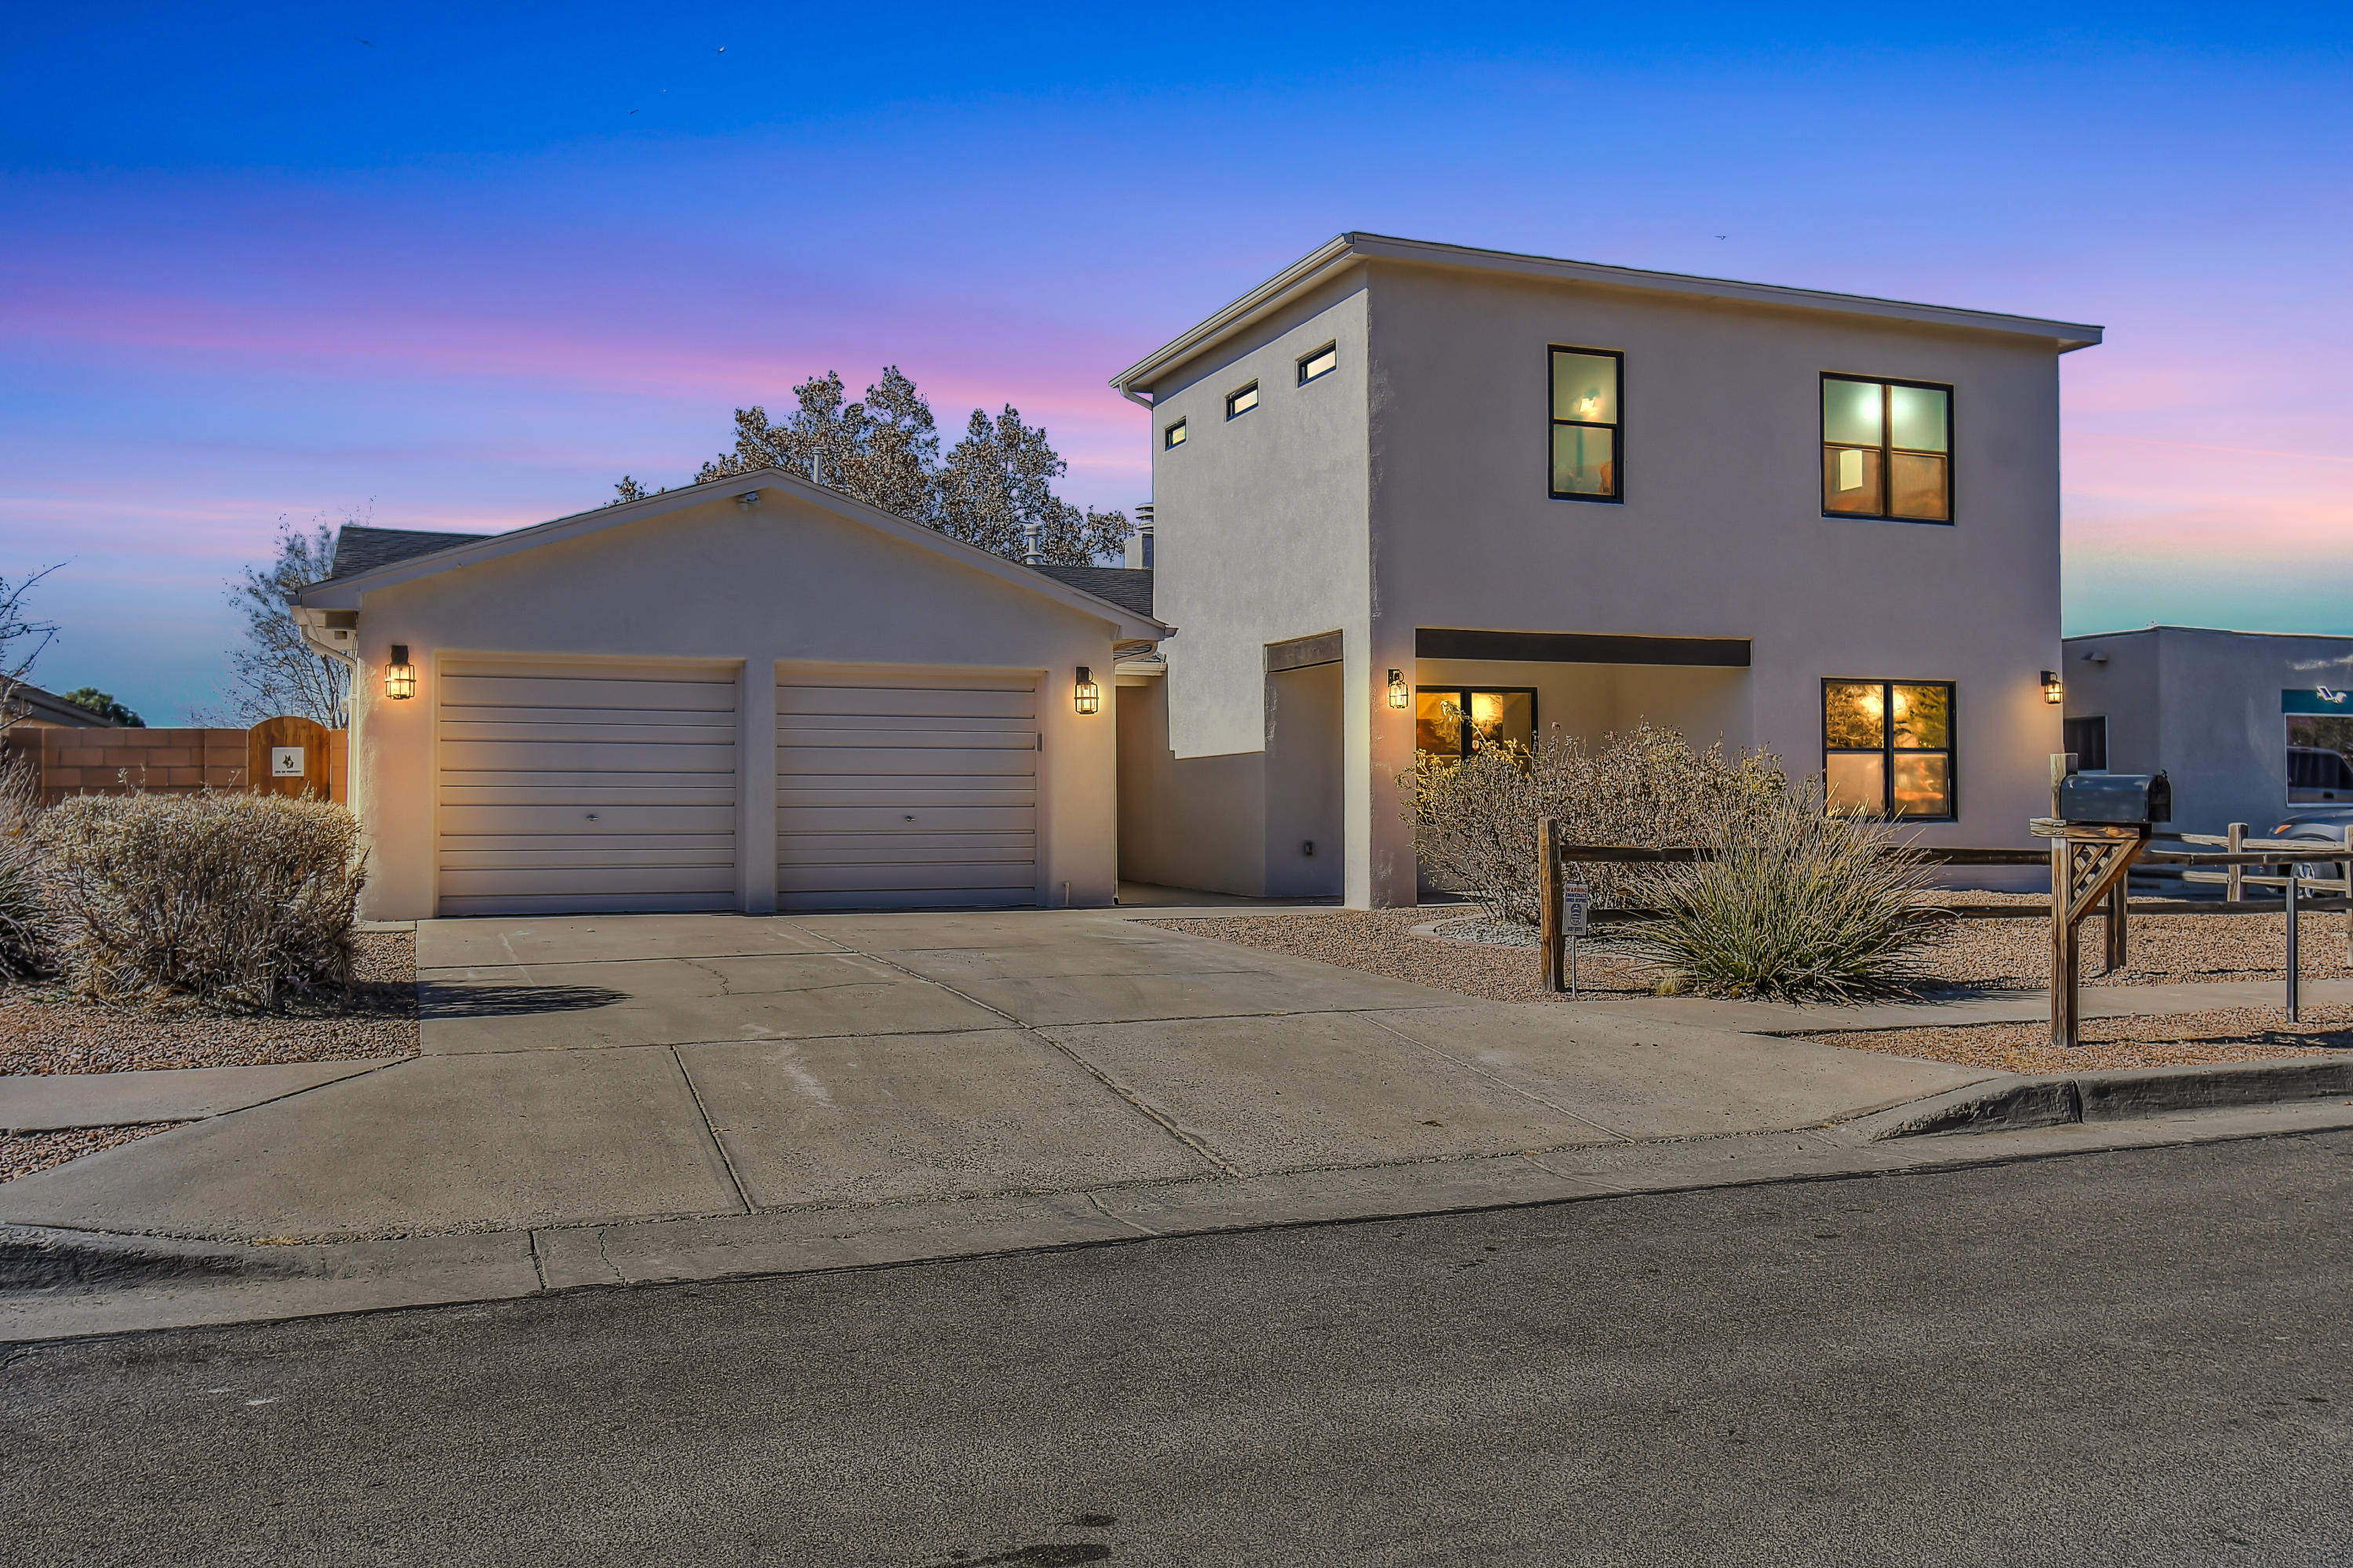 Welcome Home to Granada Hills!! Beautifully updated with 5 bedrooms & 4 Bathrooms. This home is perfect for the multi-generational living situation with 3 Main Bedrooms with Ensuites and ALL with Walk-In Closets!! Two more bedrooms with generous sqft and ample closet space. The main level of this home has two living areas, country kitchen adjoining a bright dining room, large bonus area off the kitchen would make a Huge Butler's Pantry/Prep Area or a nice Den. Also on the main level you have 4 bedrooms and 3 bathrooms and French doors that welcome you to the lawn-filled backyard! Sunshade over the patio is great for escaping the afternoon sun! The BRAND NEW luxurious Main Bedroom Suite is completely private upstairs with incredible VIEWS of the Sandia Mountains! HURRY HOME!!